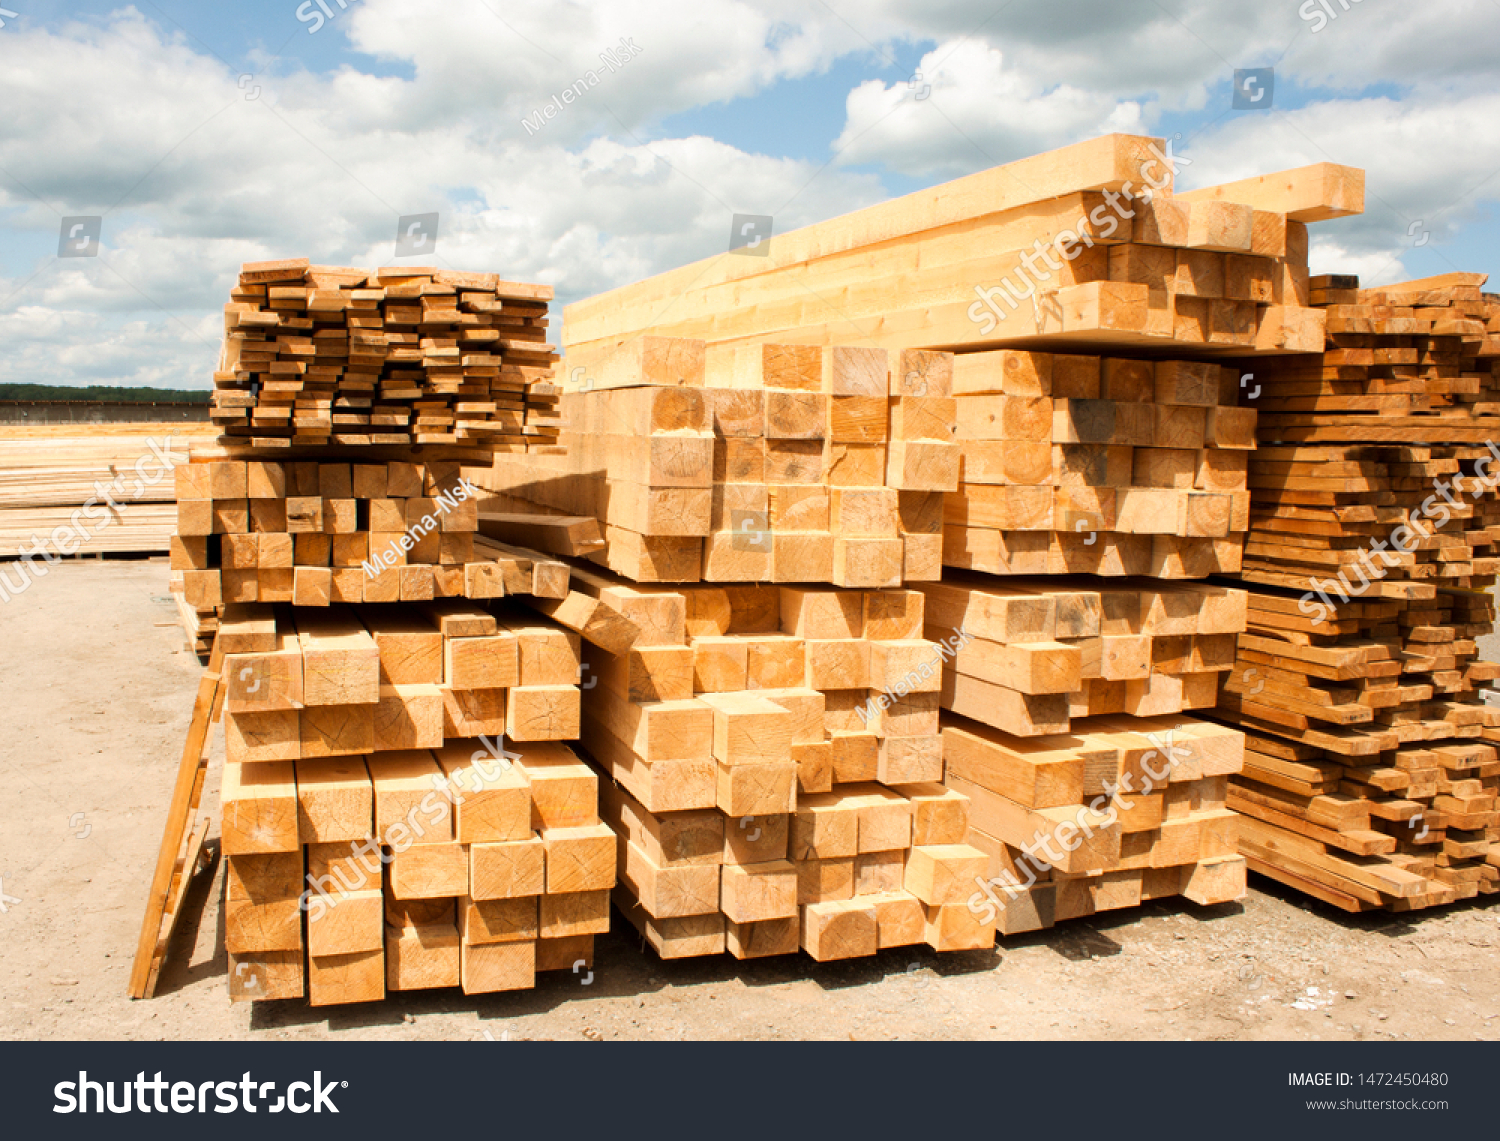 Lumber warehouse in the open air. Wooden beam, planks of wood, stacked in stacks. Sunny day, blue sky with clouds. Horizontal photo #1472450480